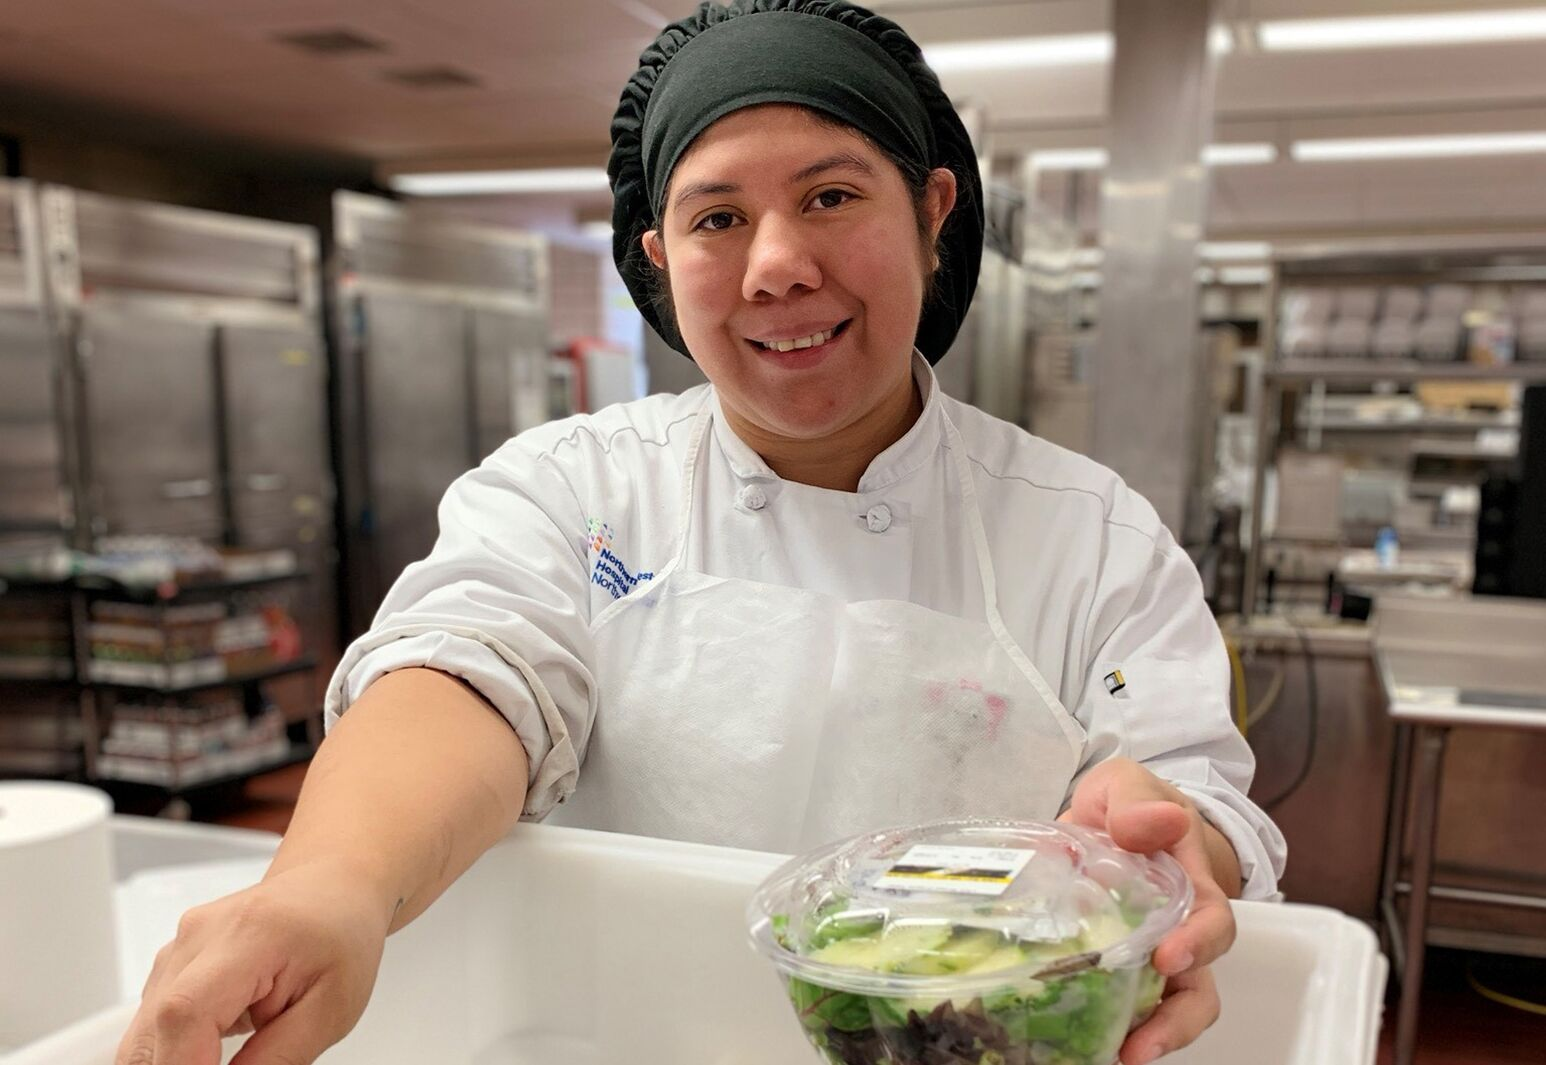 Vickiana Alejandro, of Northern Westchester Hospital's food services, packs up sandwiches and salads for the Food Recovery Program.